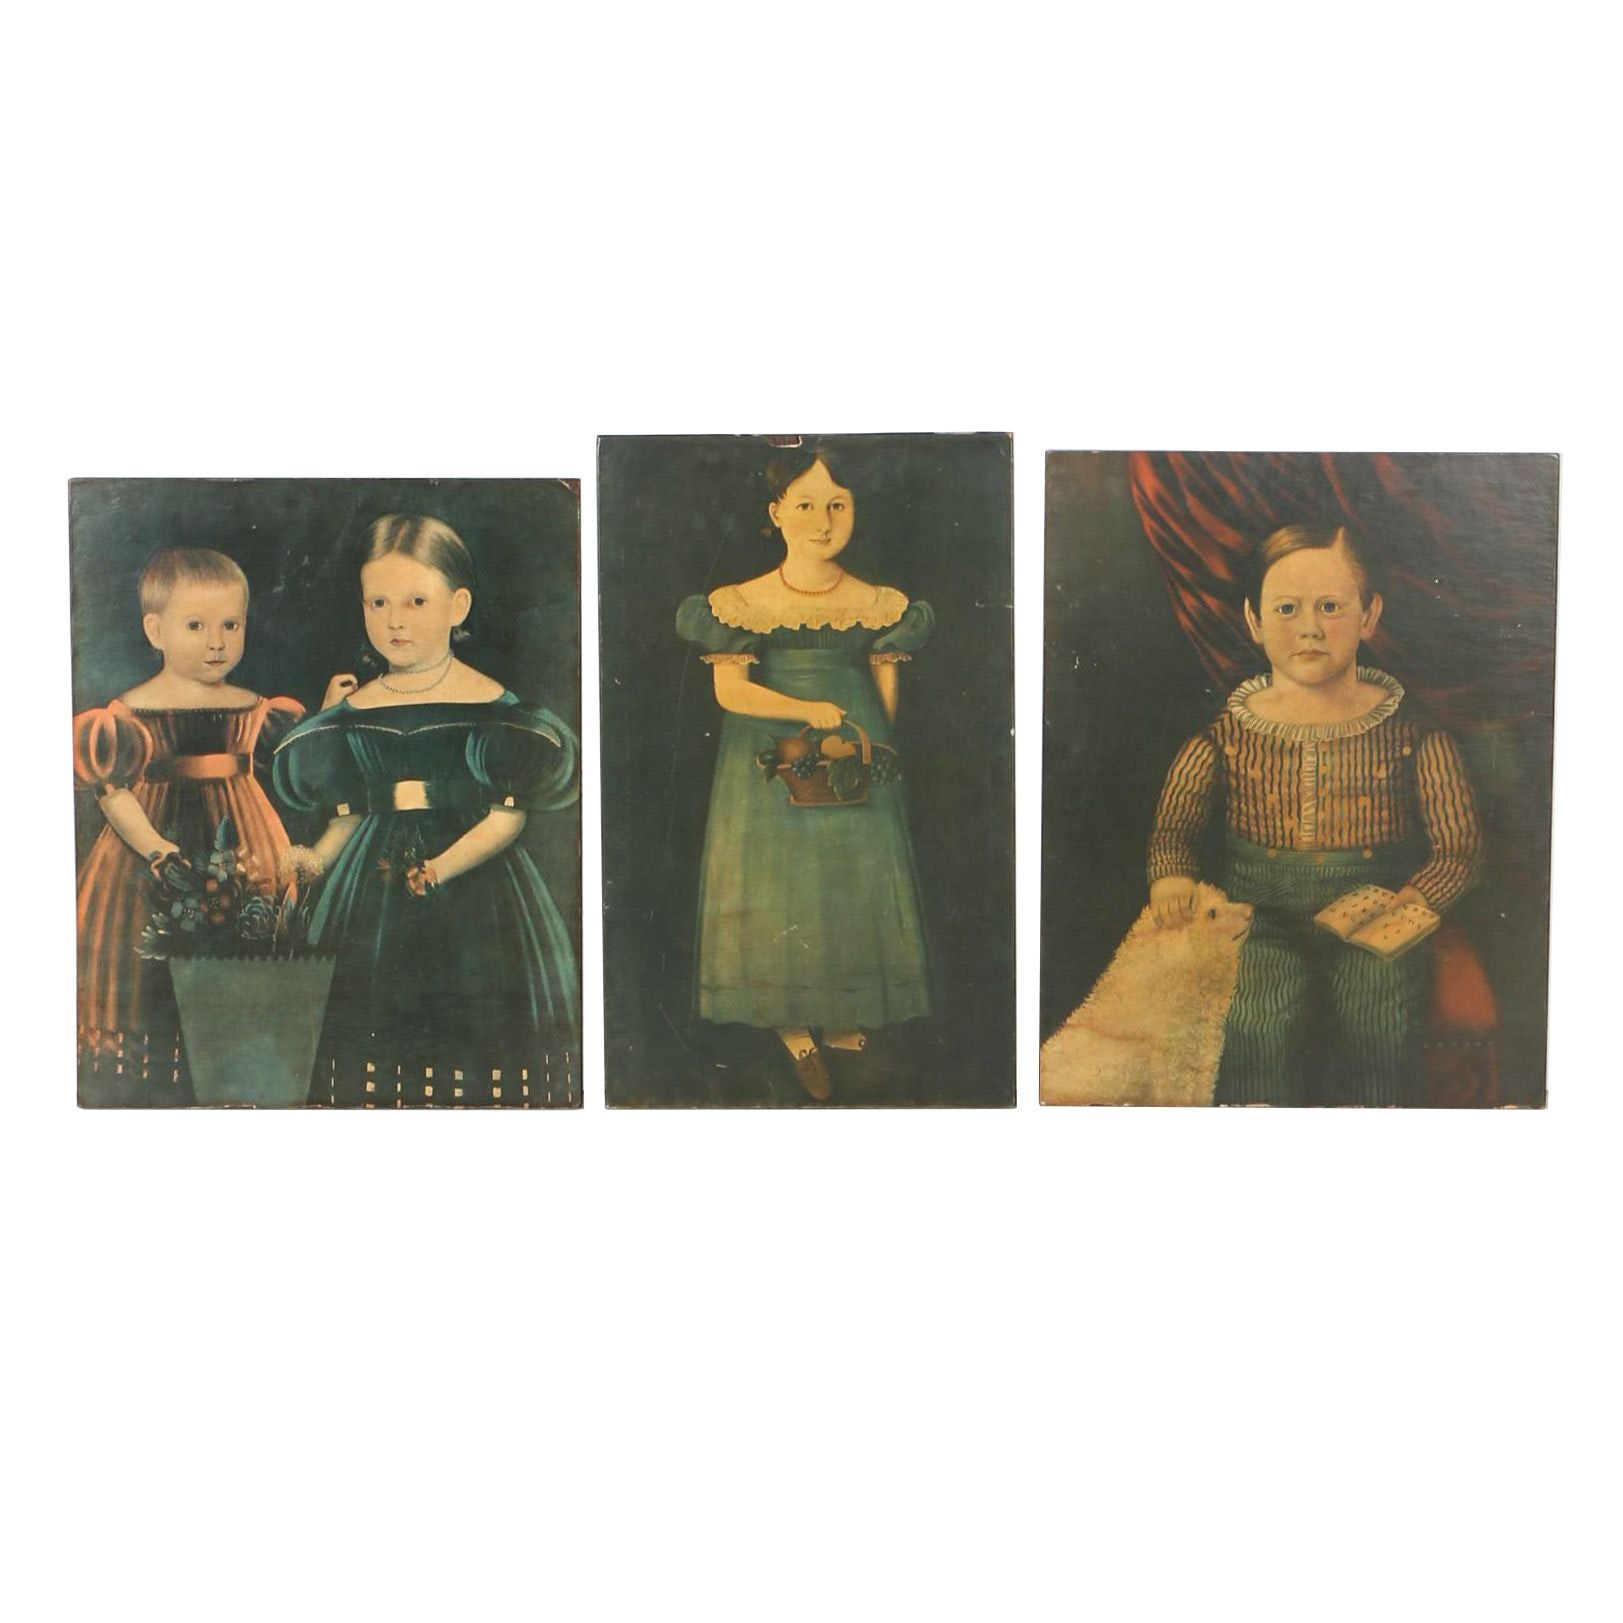 Decoupage Offset Lithographs on Board After Child Portrait Paintings